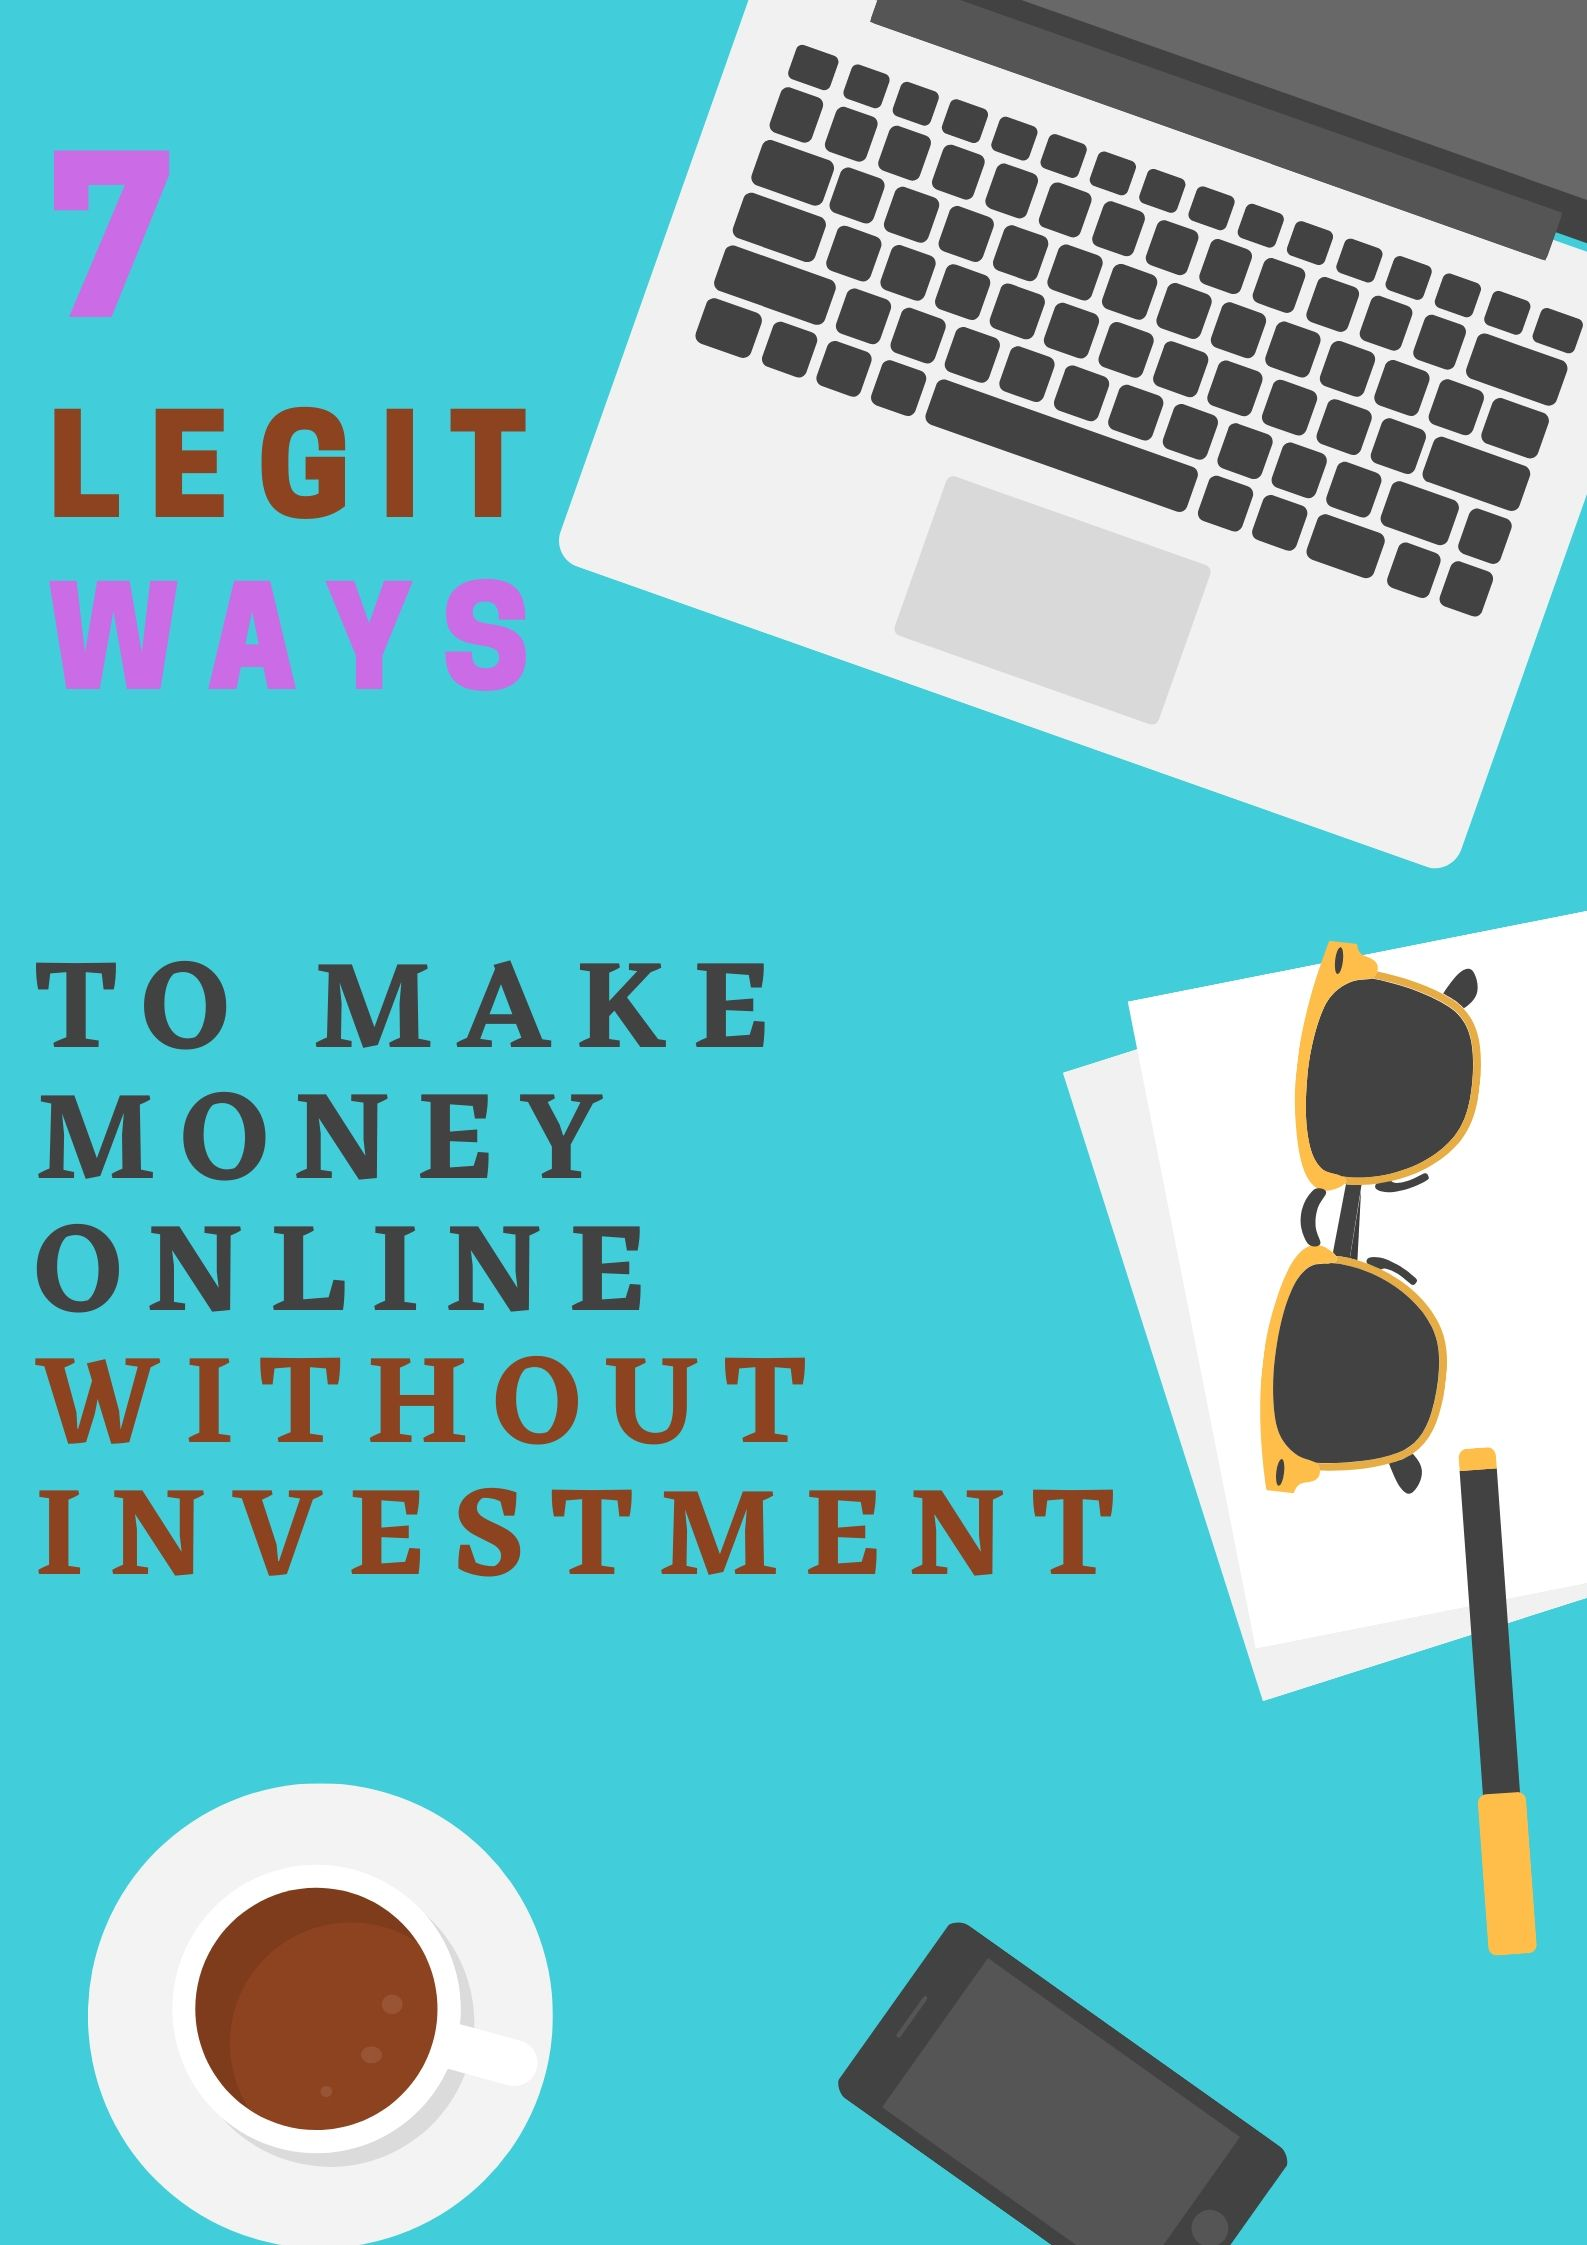 legit ways to earn online without investment